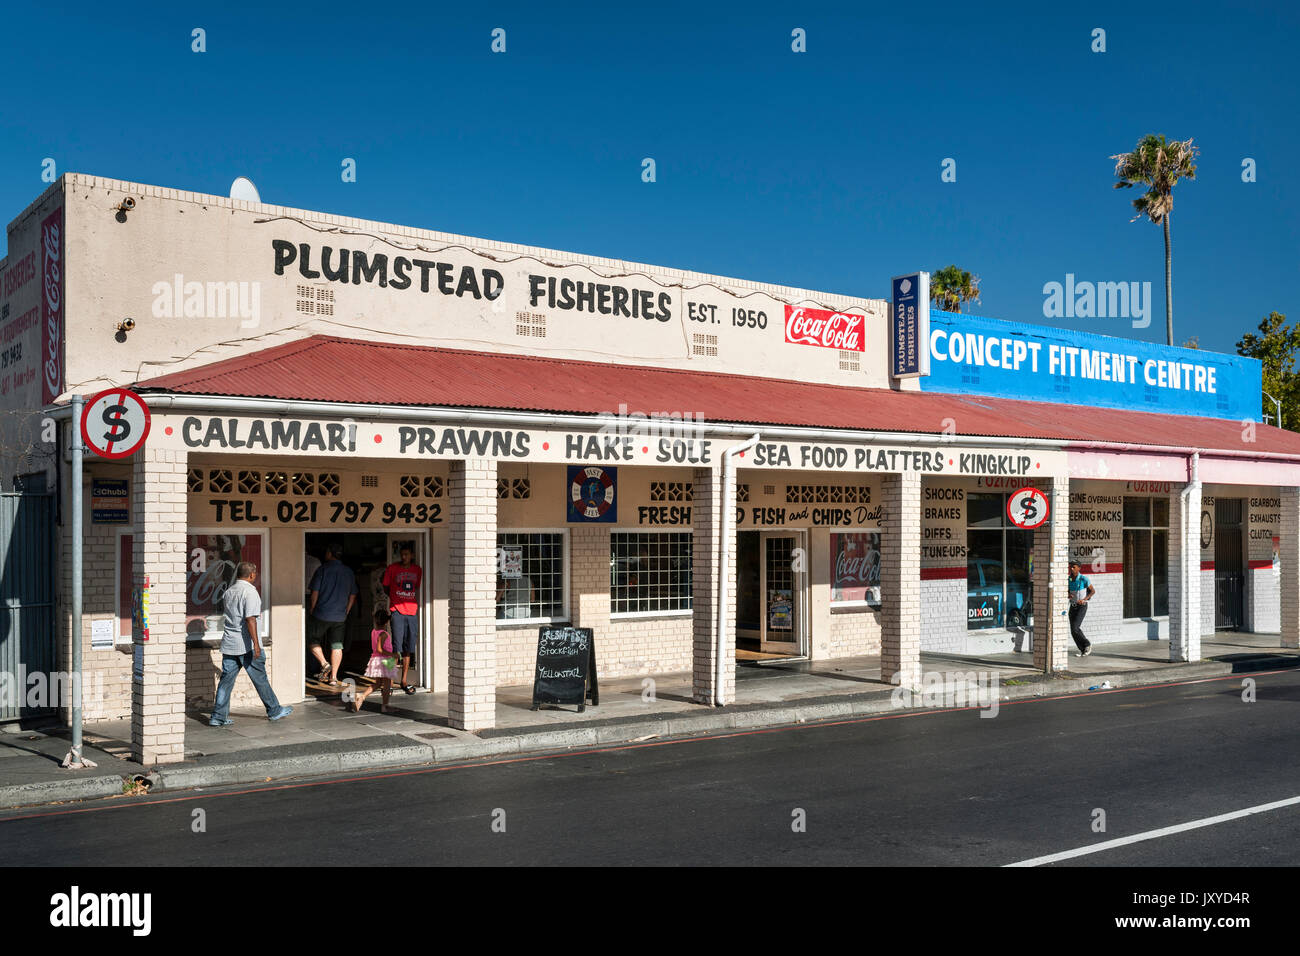 Plumstead Fisheries in Cape Town. - Stock Image